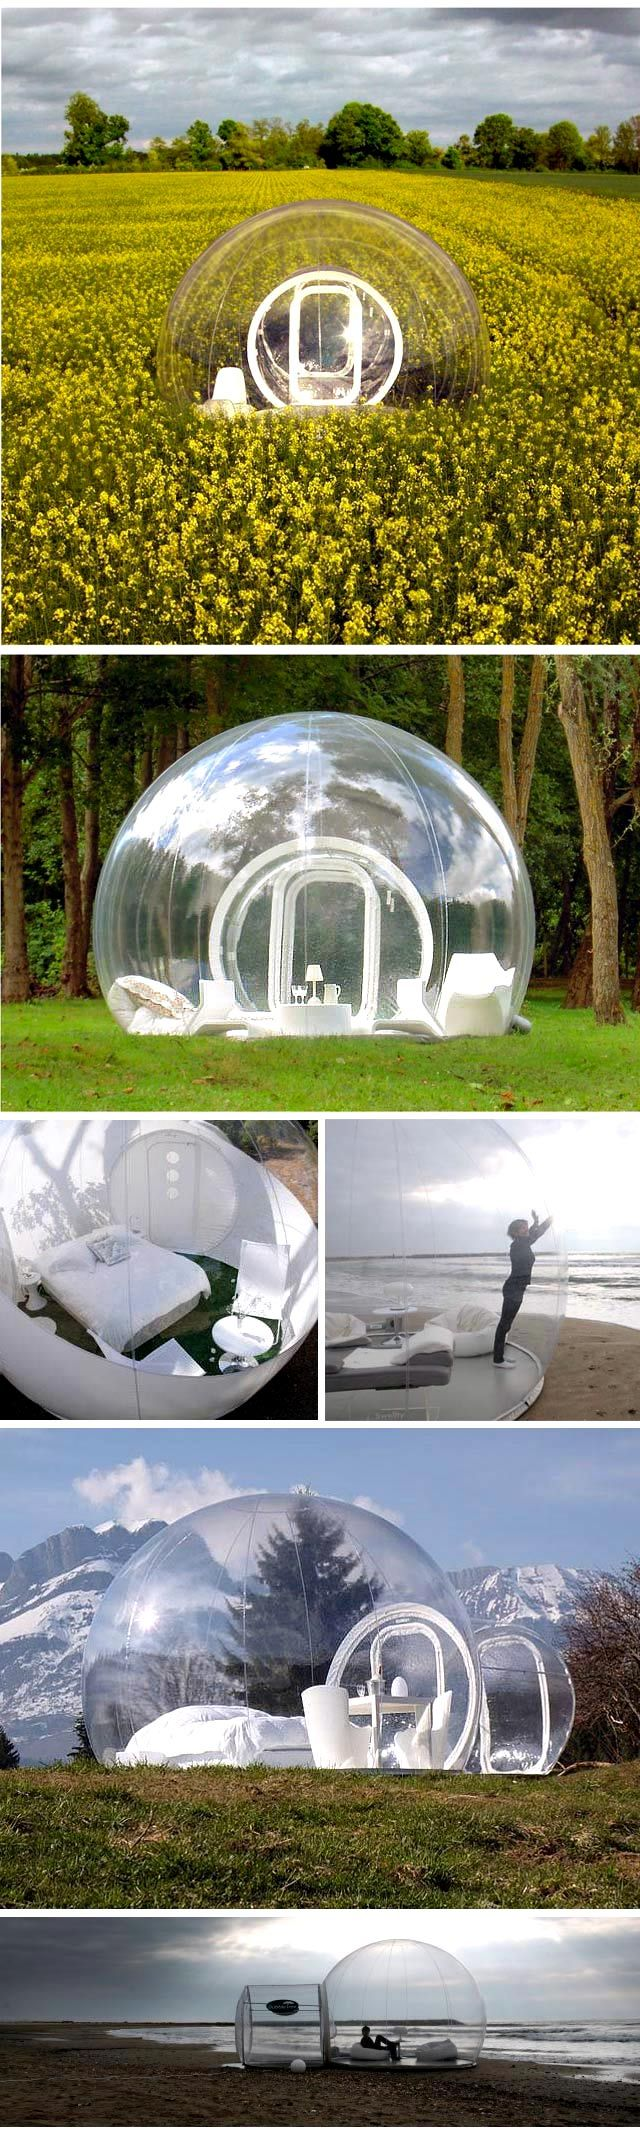 Inflatable tent. So cool for a rainy night! Star watching. BUGS. adam olana çok bile